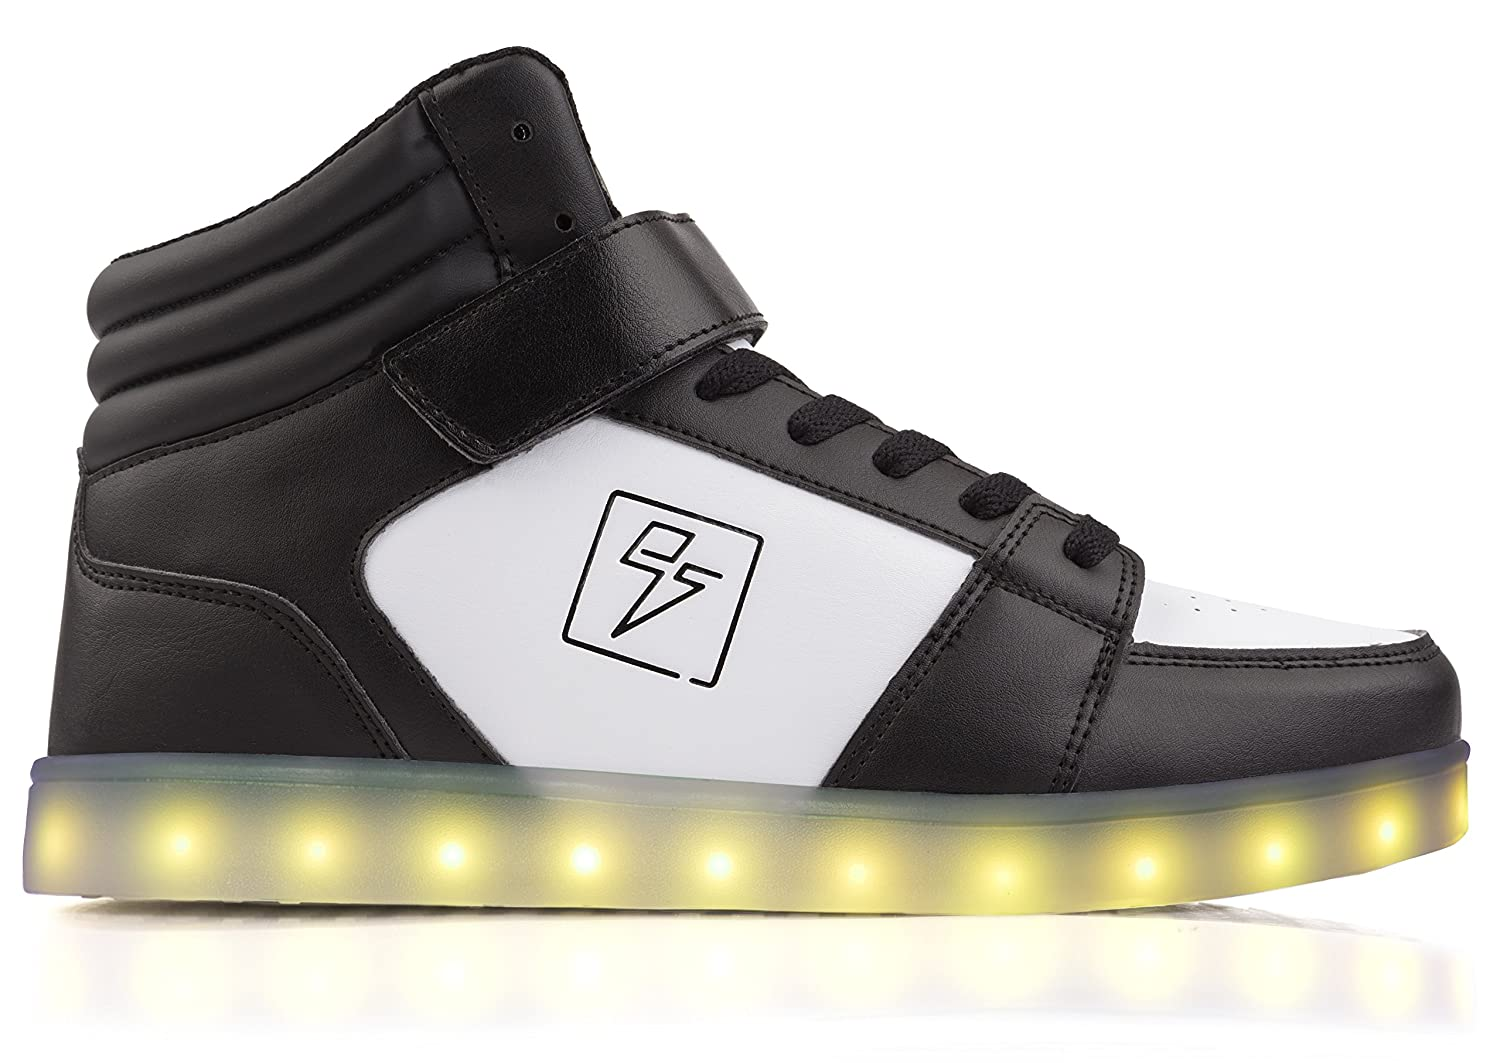 Electric Styles Light up Shoes - High Tops by B01COEL61G 6 B(M) US Women / 4 D(M) US Men|Black & White